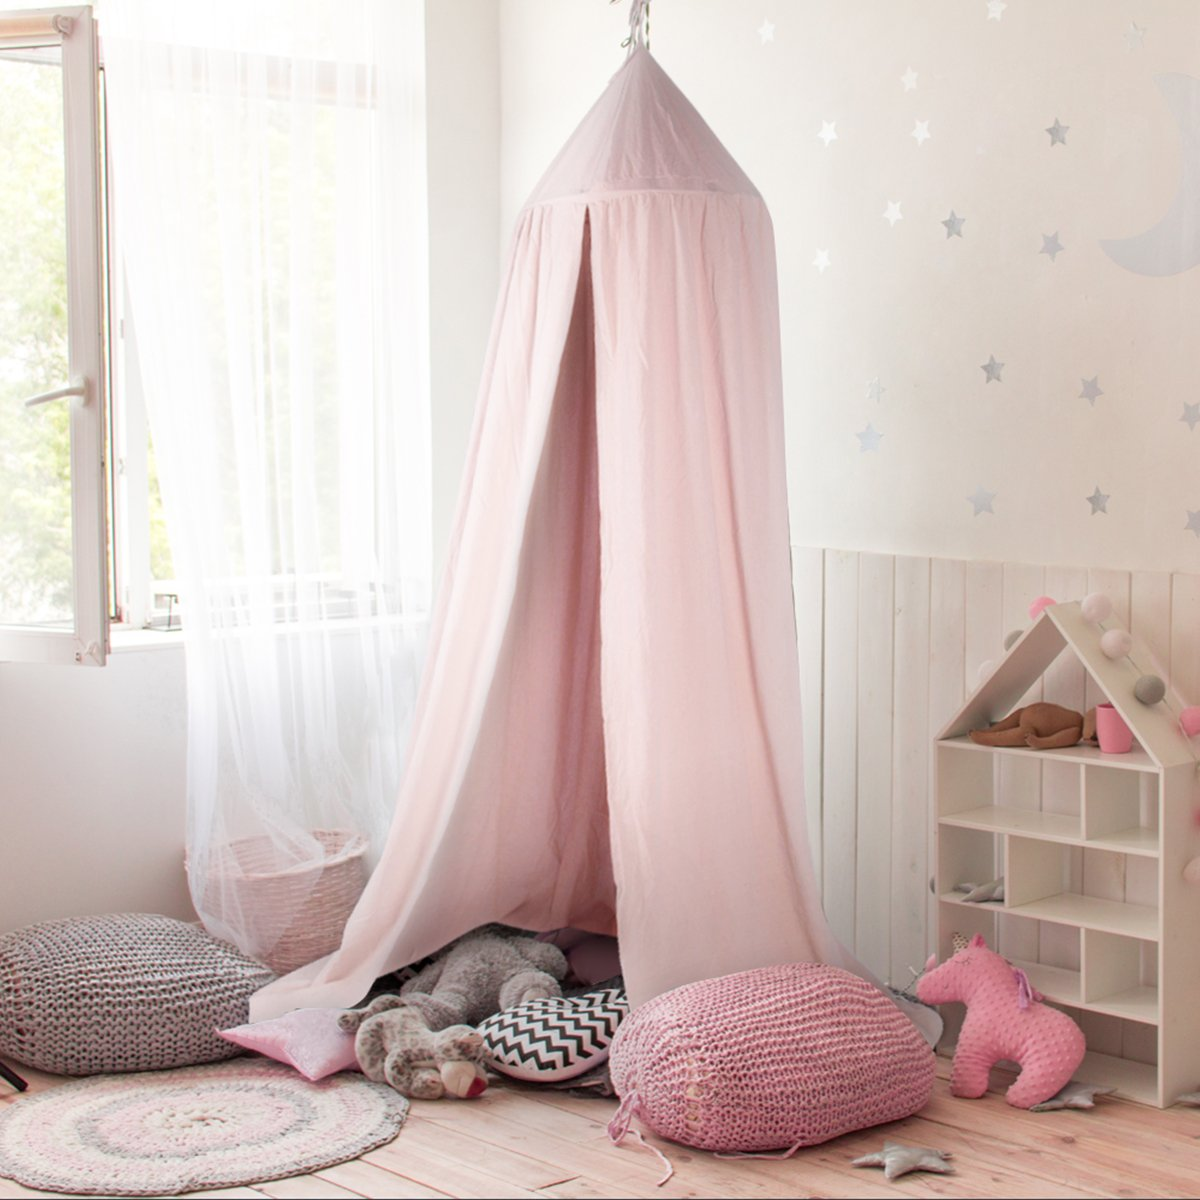 GUSODOR, Bed Canopy Kids Dome Cotton Mosquito Net Play Tent Good for Baby Indoor Outdoor Playing Reading Bedroom Dressing Room Height 240cm (Grey)